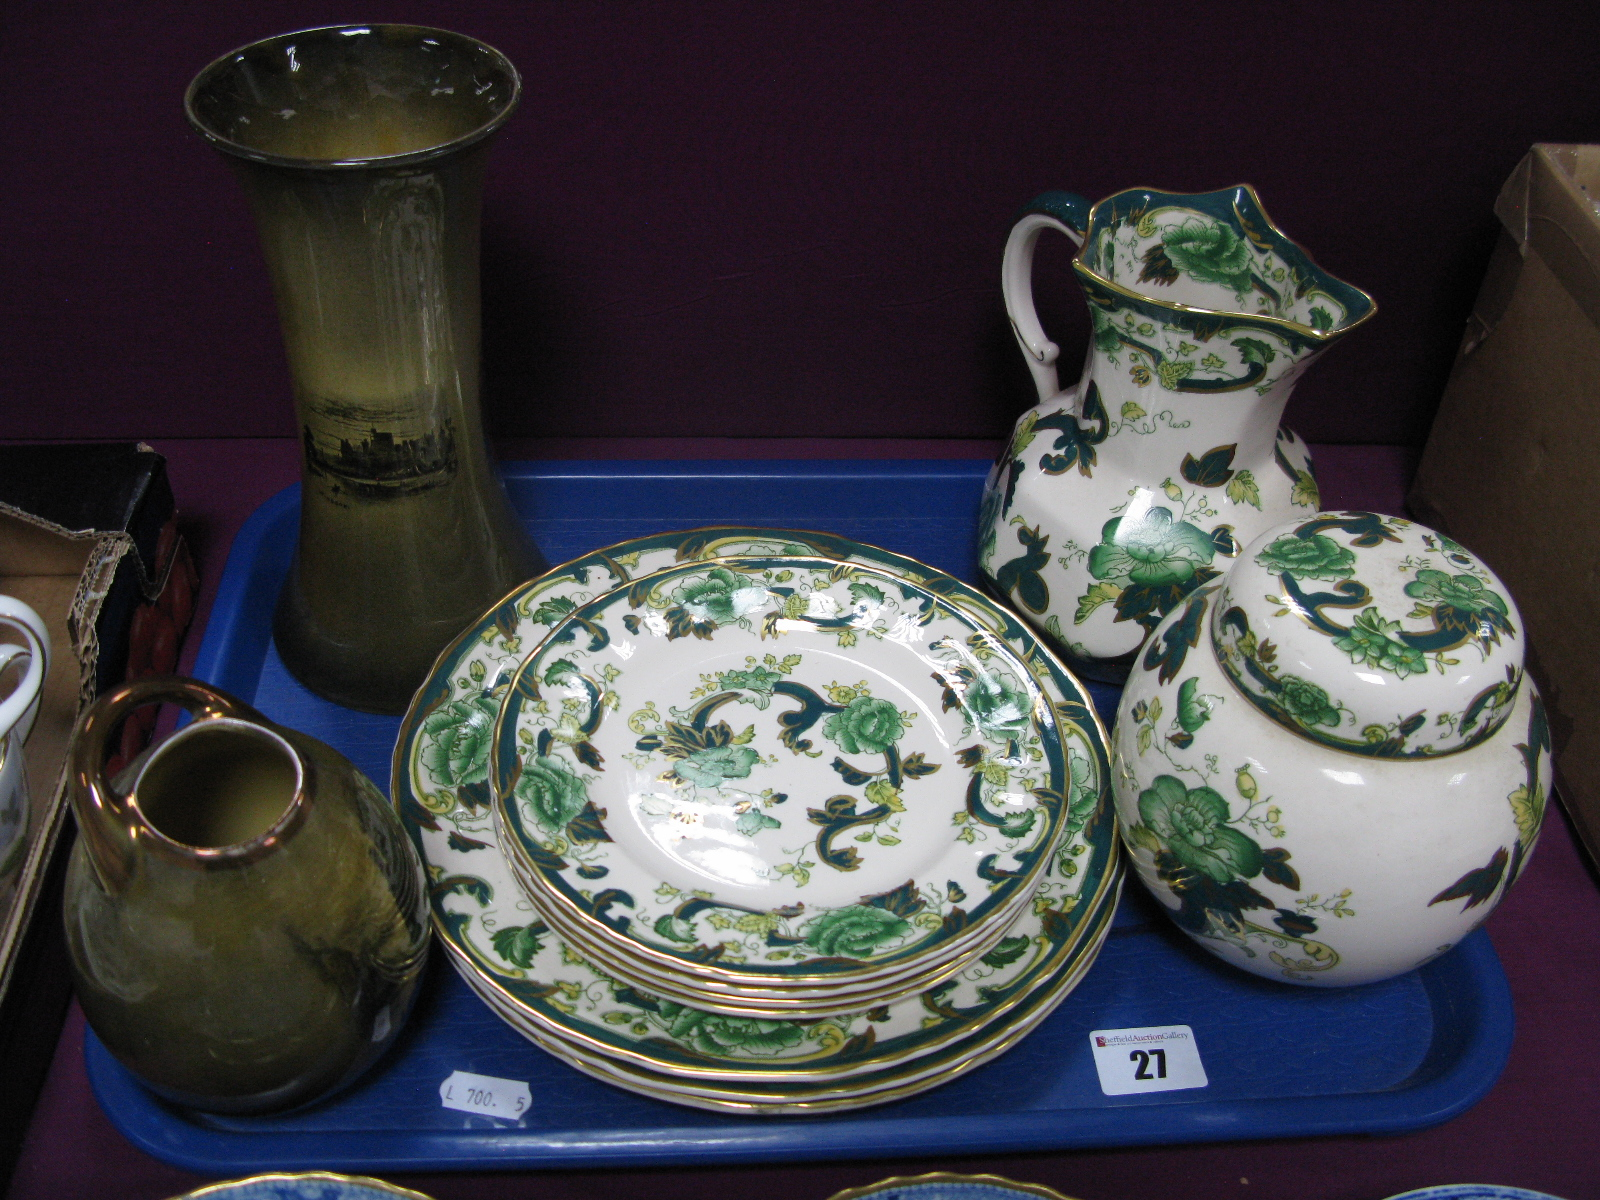 Masons 'Chartreuse' Ginger Jar, octagonal jug and seven plates, Royal Vistas vases:- One Tray